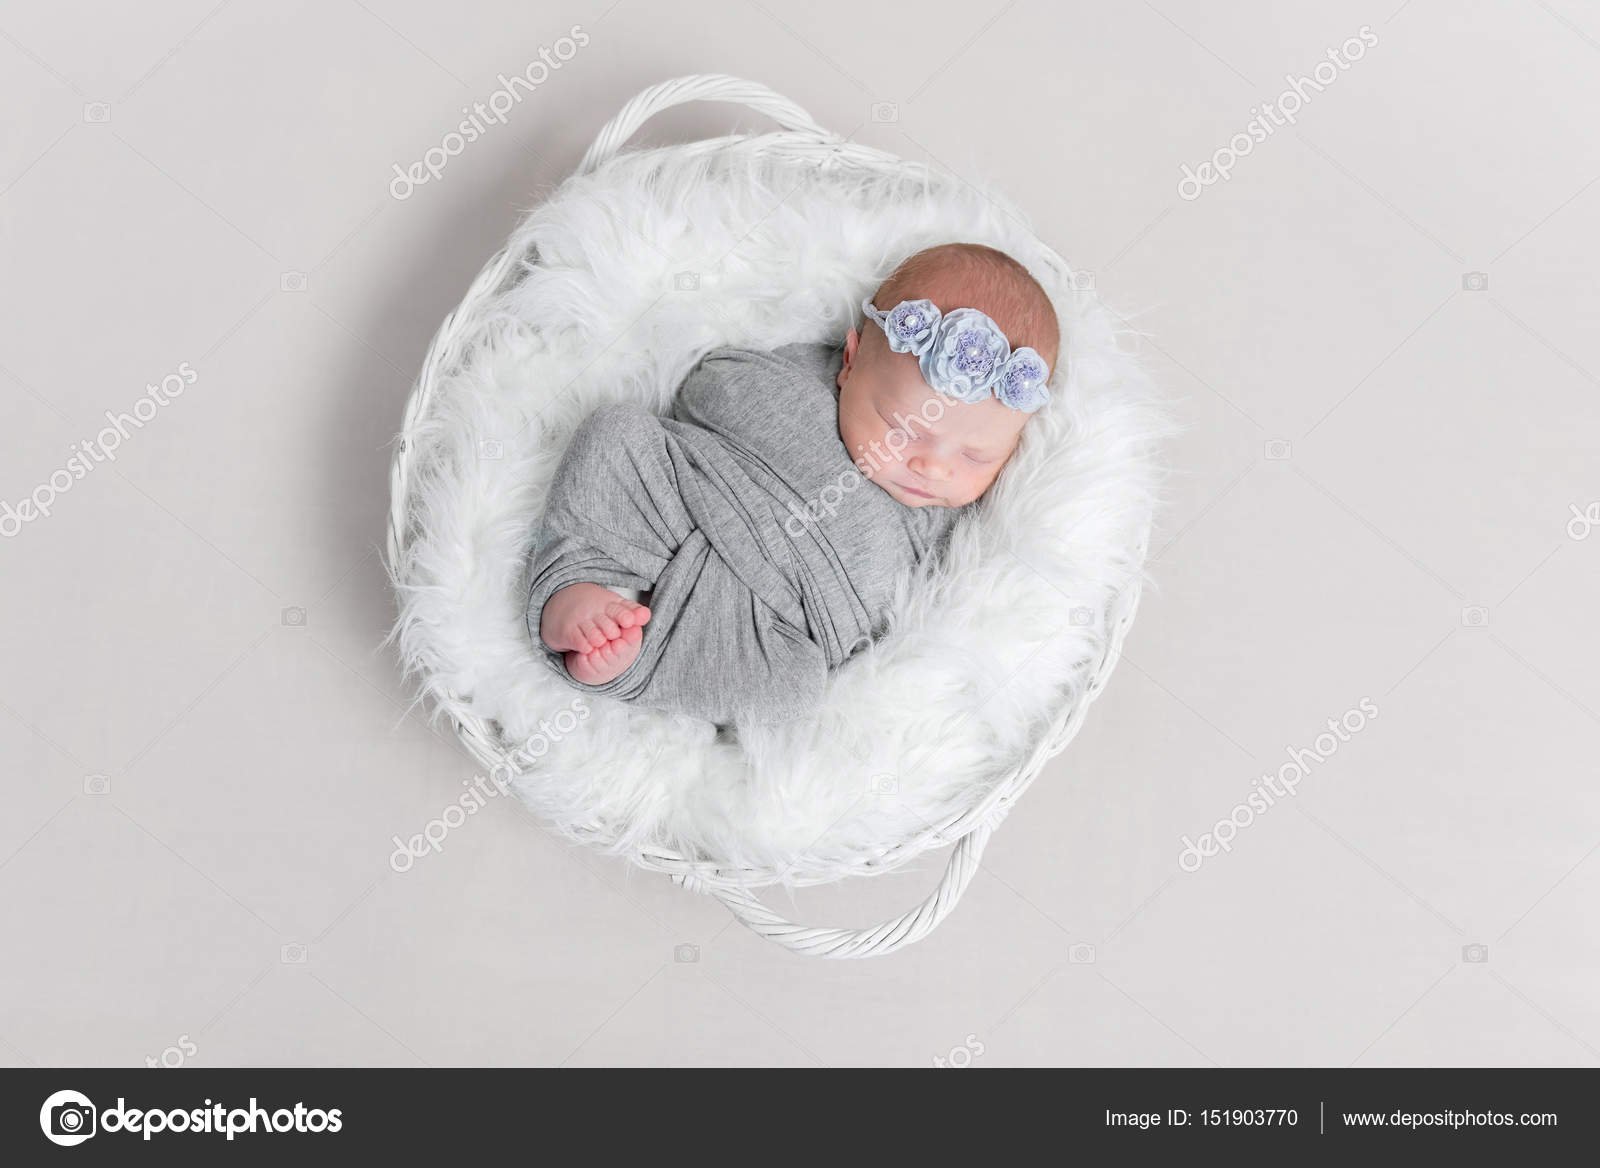 Baby Wrapped In Blanket In White Basket Topview Stock Photo